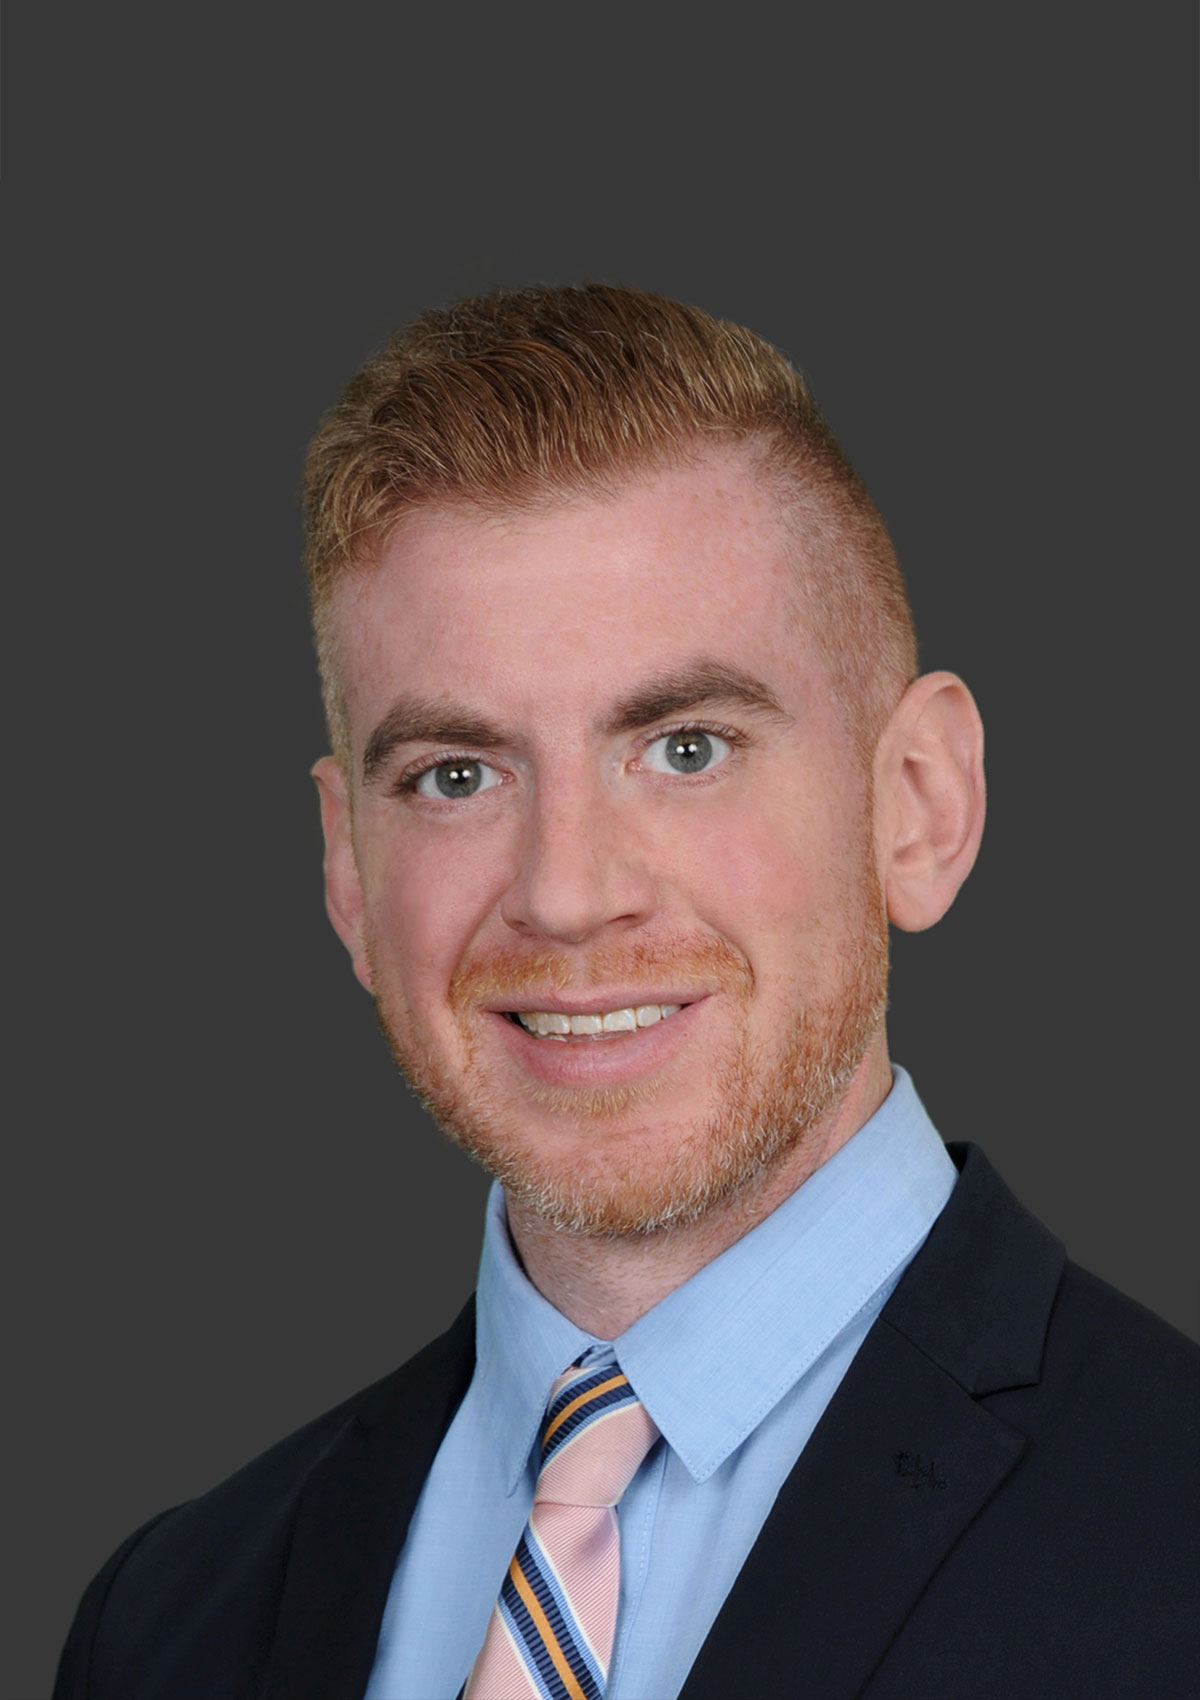 Click here to learn more about Gardner, Justin M.